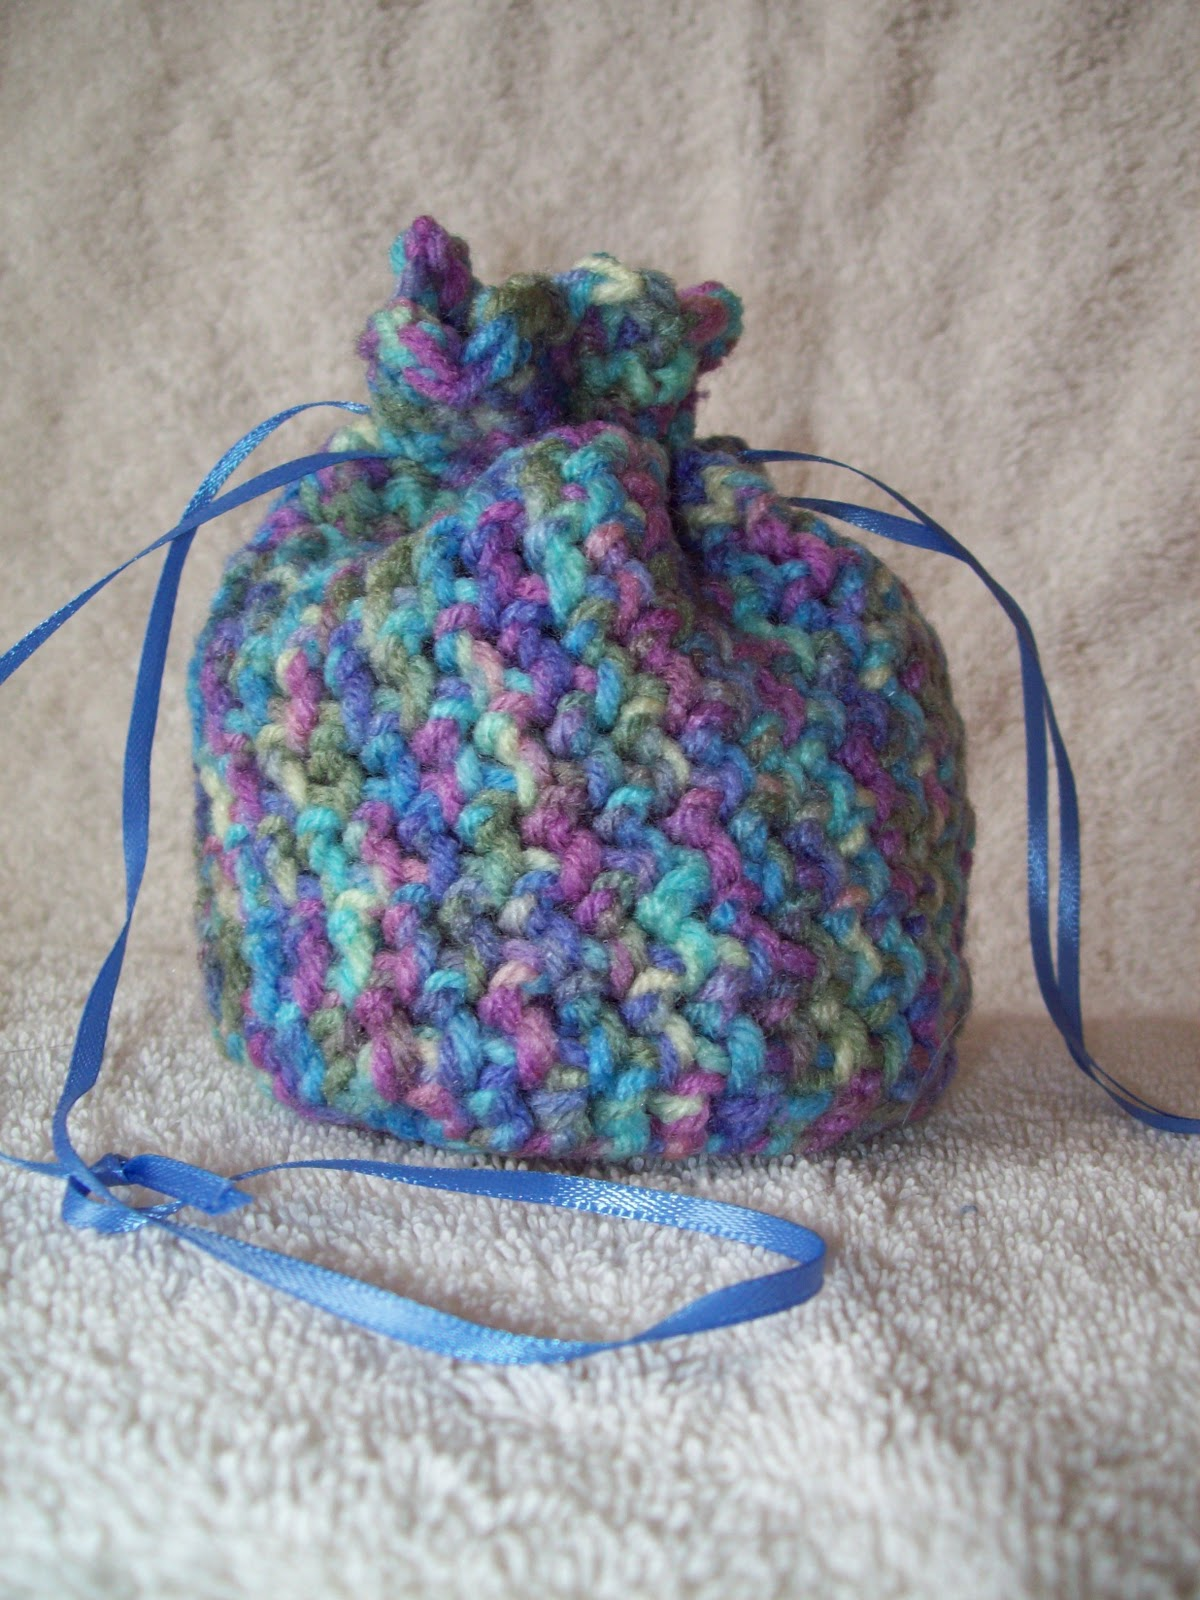 Mini Crochet Bag : Stitchin the Night Away: Crochet Mini Drawstring Bag